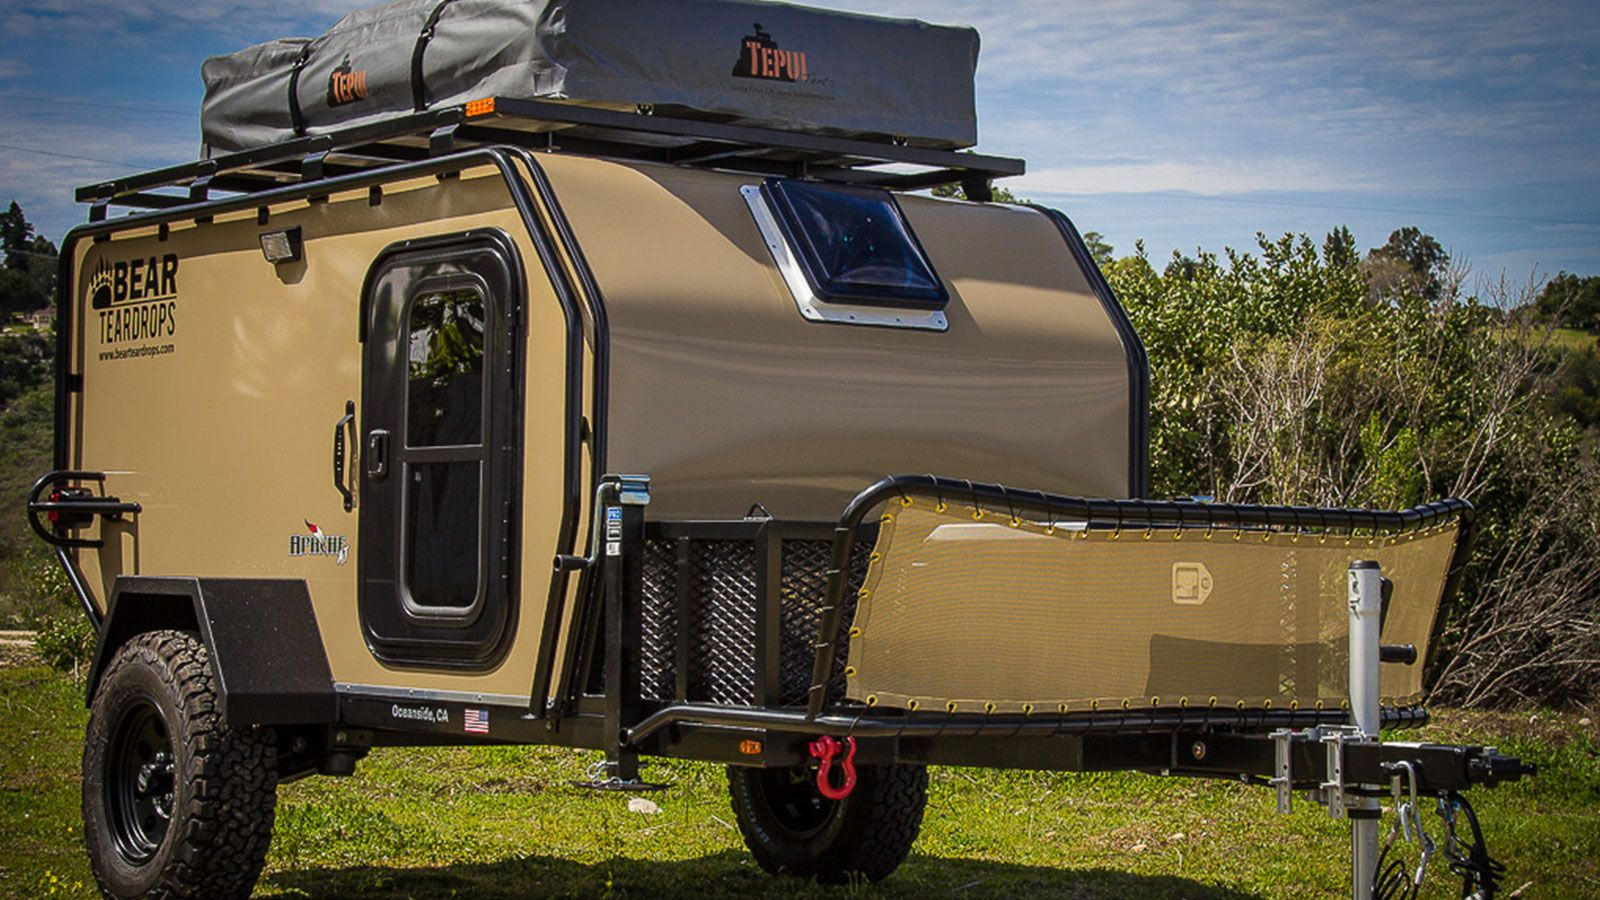 The Best Small Off Road Camping Travel Trailers You Can Buy Remolque Camping Remolques De Viaje Casa Rodante